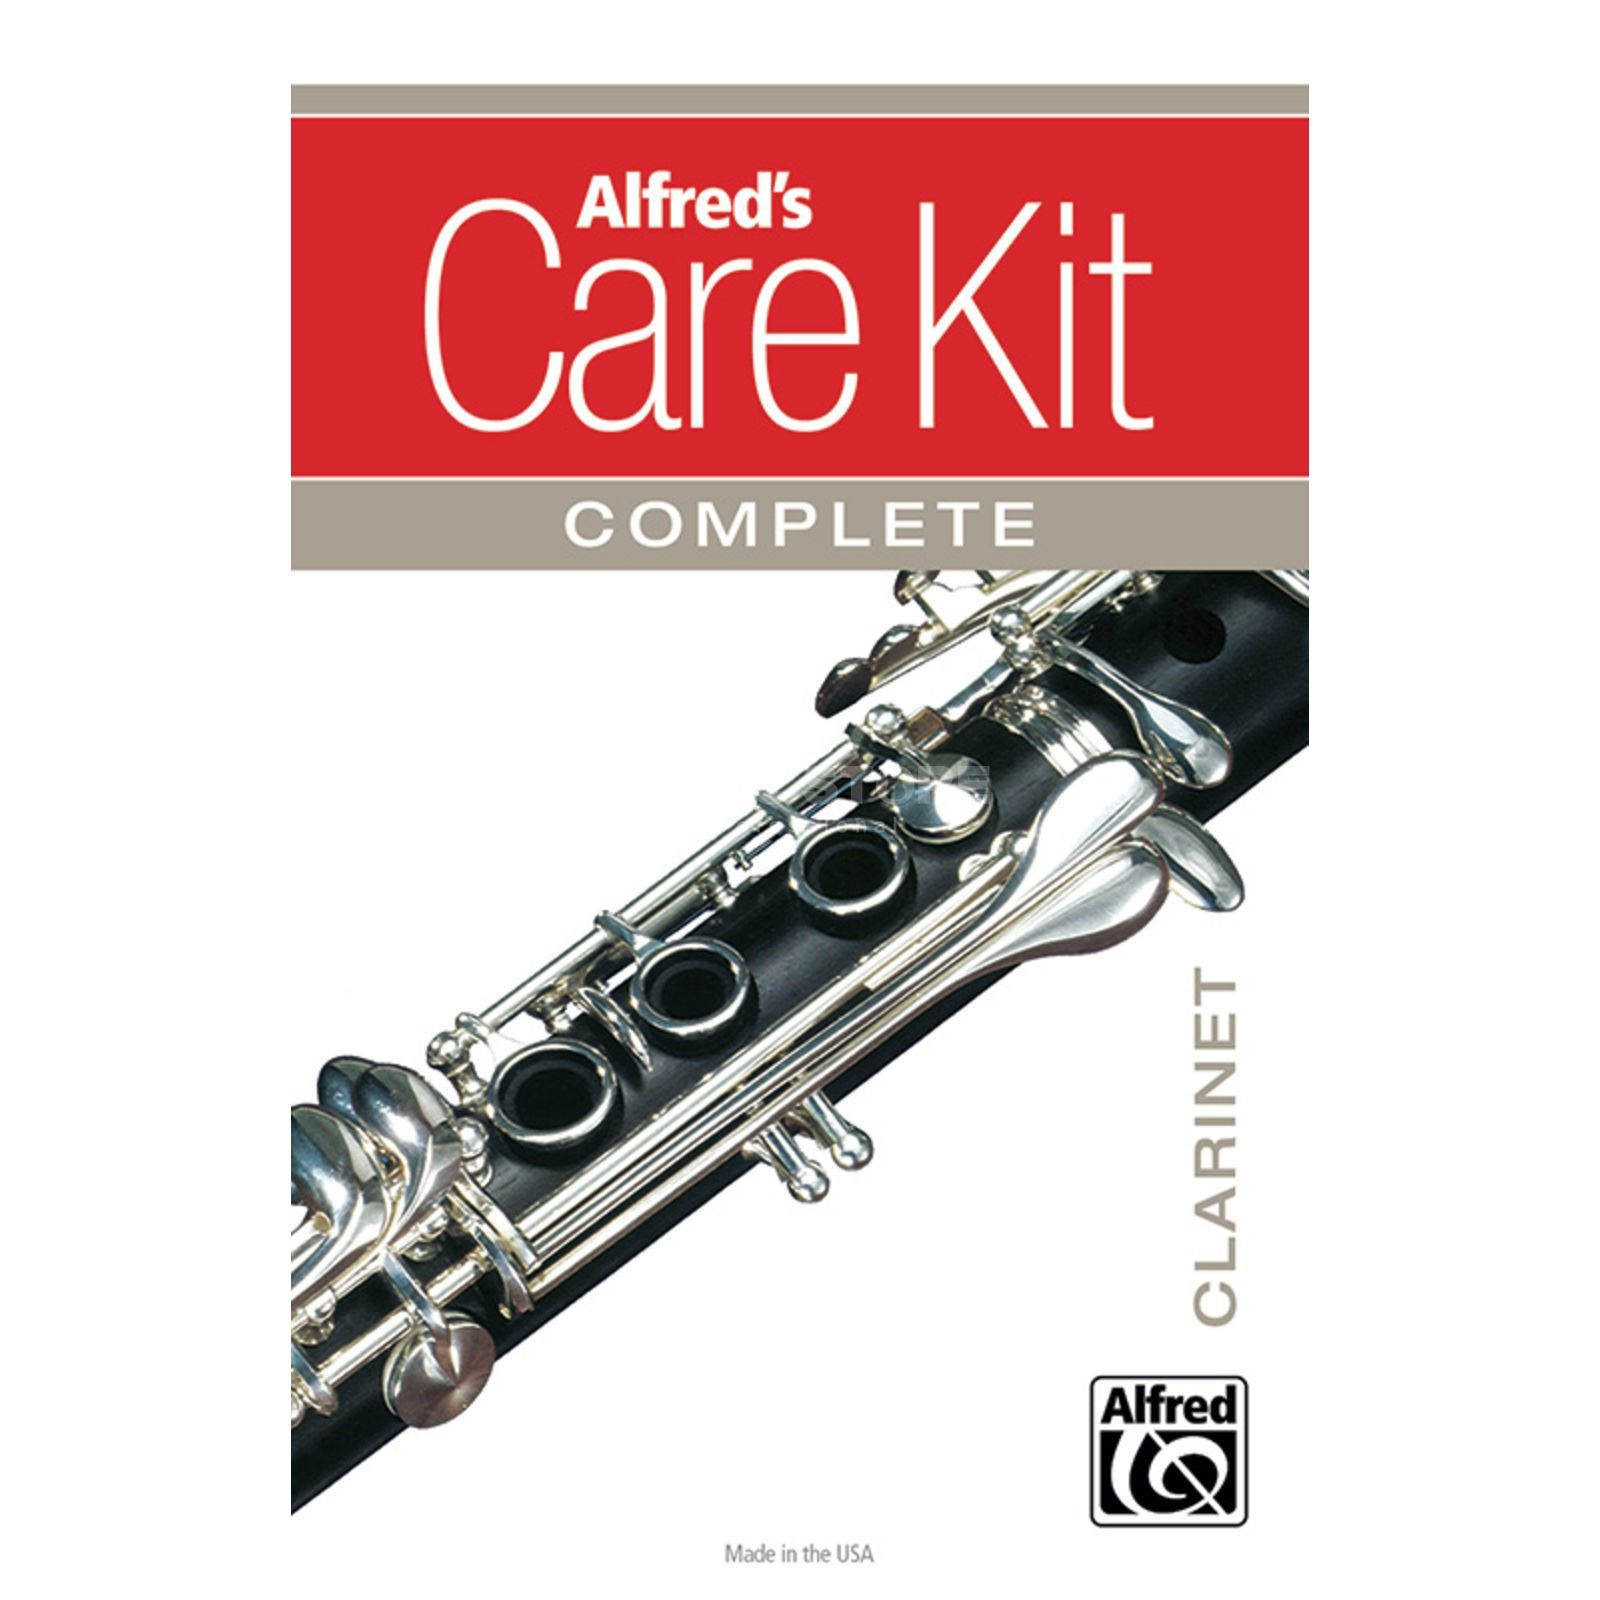 Alfred Music Care Kit Complete: Clarinet  Image du produit